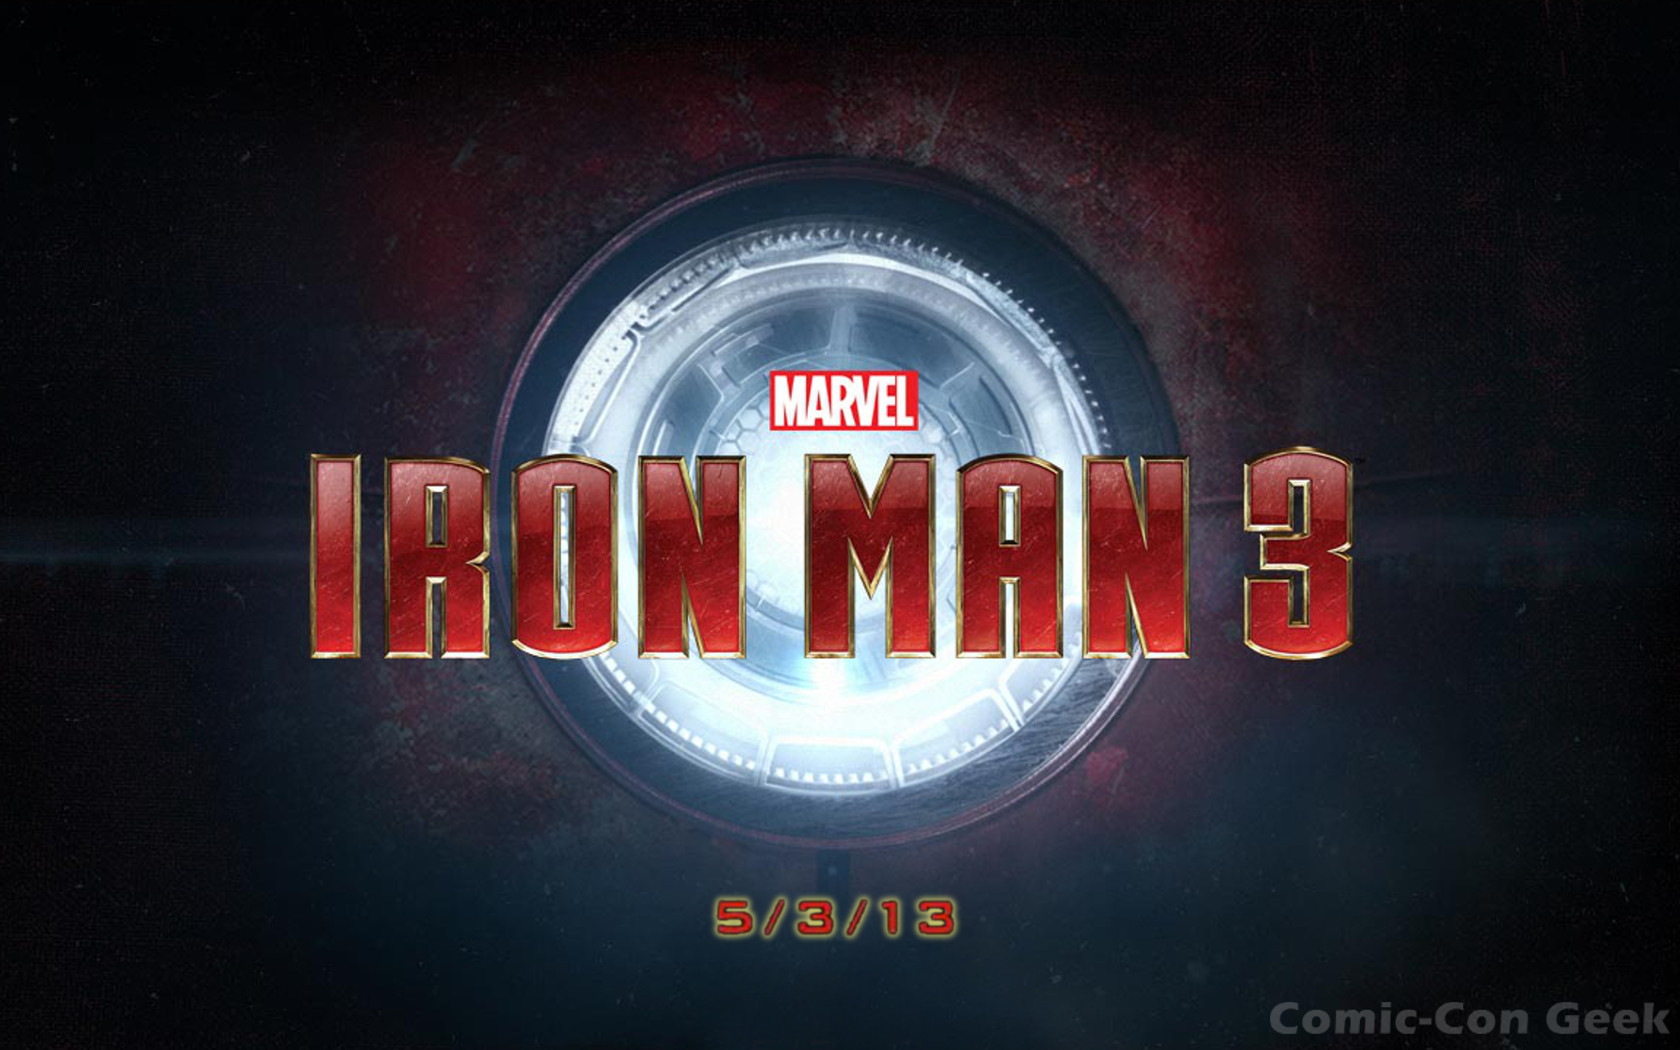 Iron man release date in Melbourne